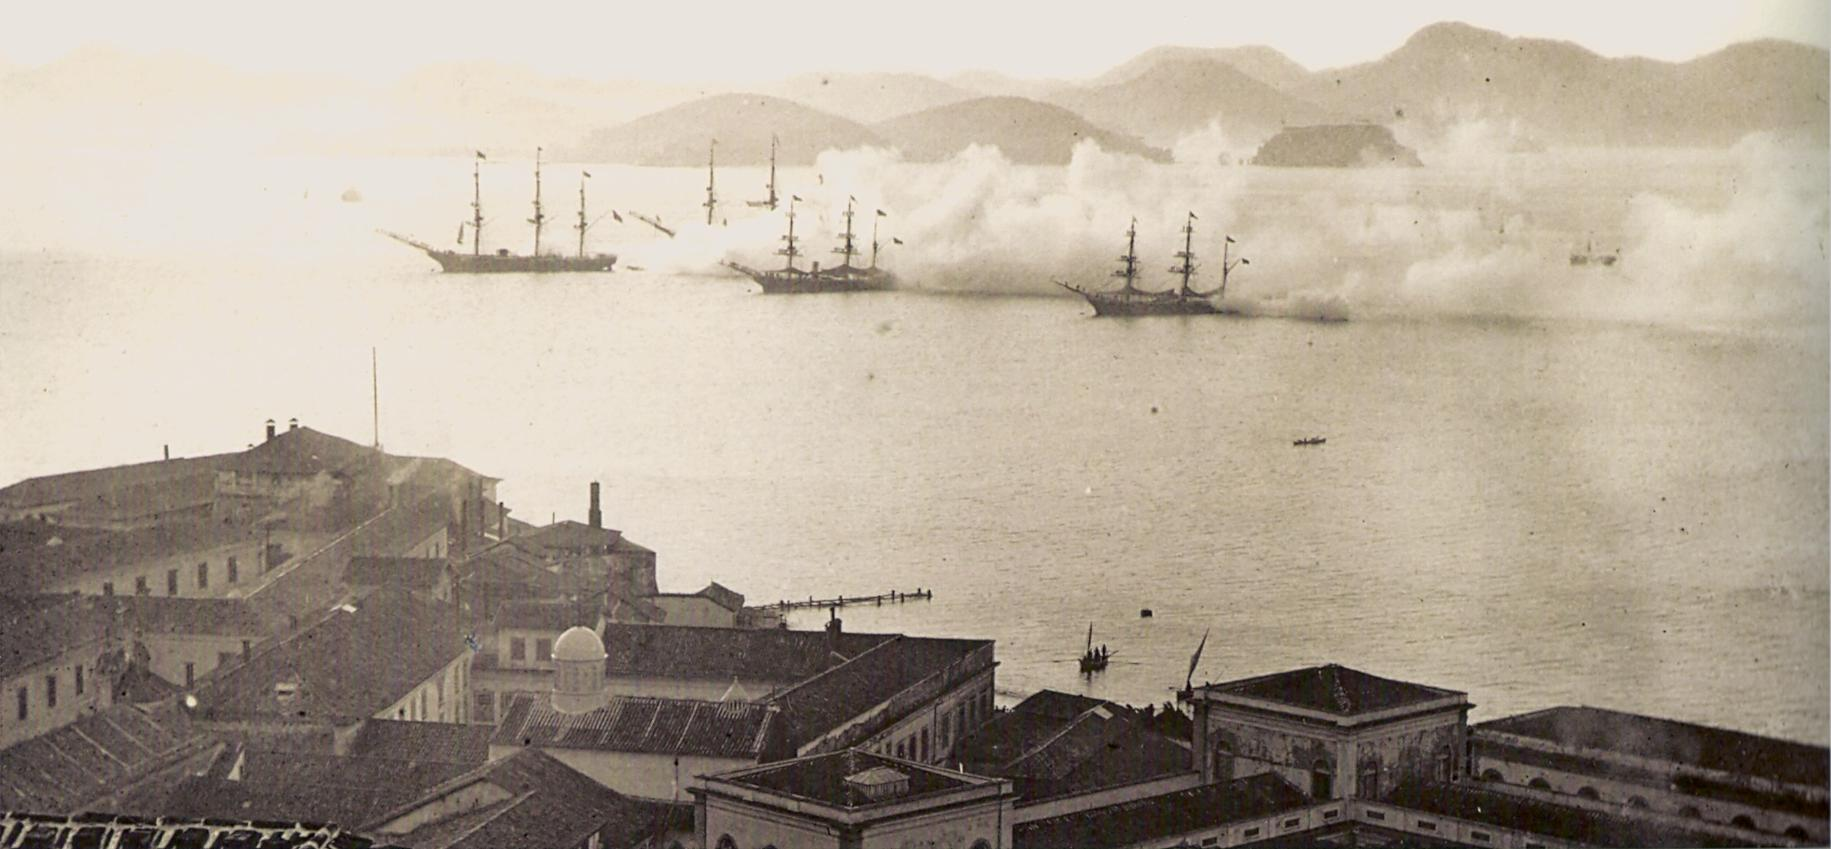 What if the positivist military anti-popular coup against the people and empire of Brazil failed? Treino_da_armada_brasileira_1870